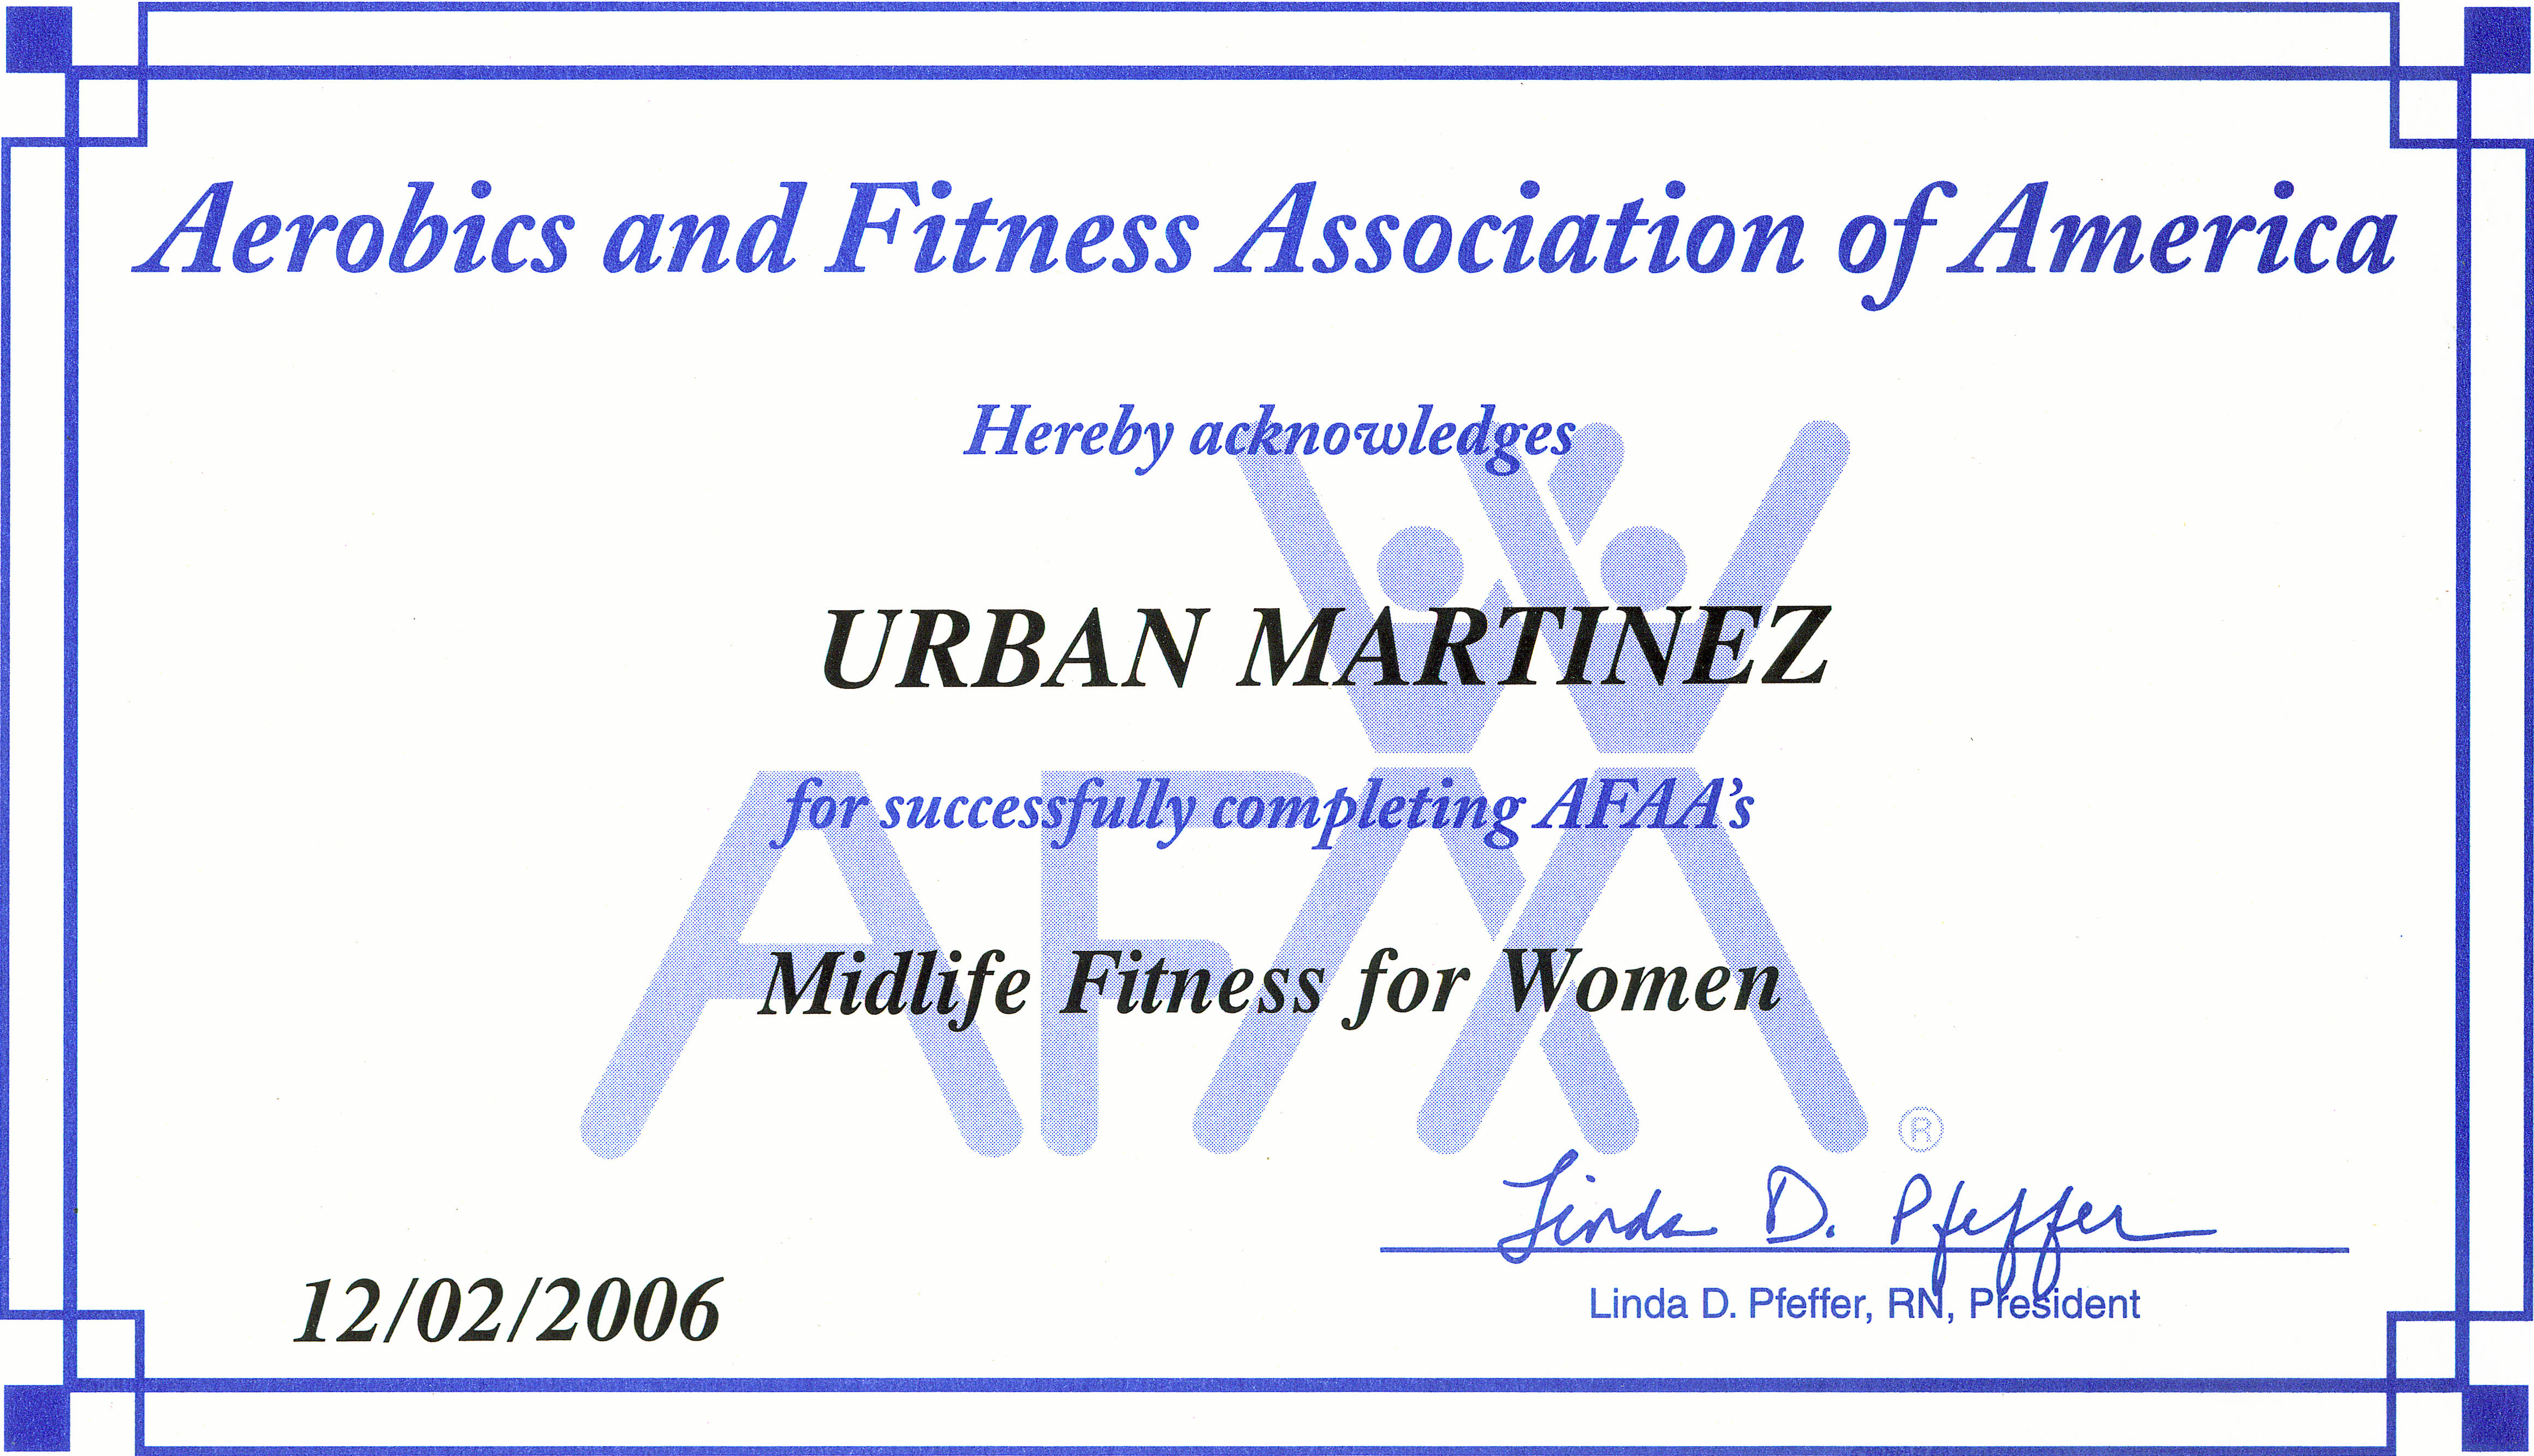 midlife fitness for women certificate